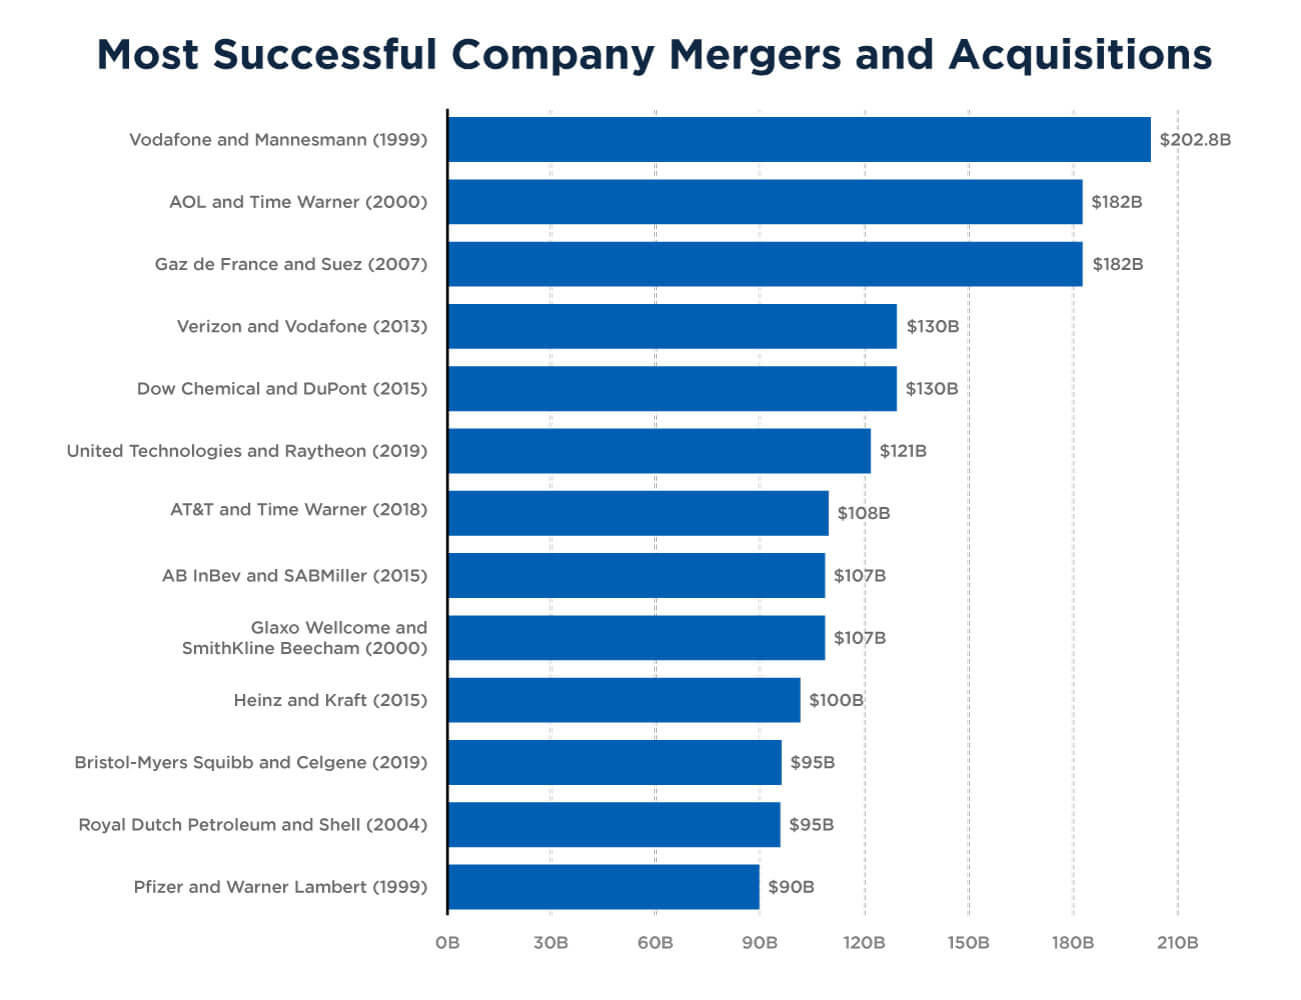 The biggest mergers and acquisitions in history